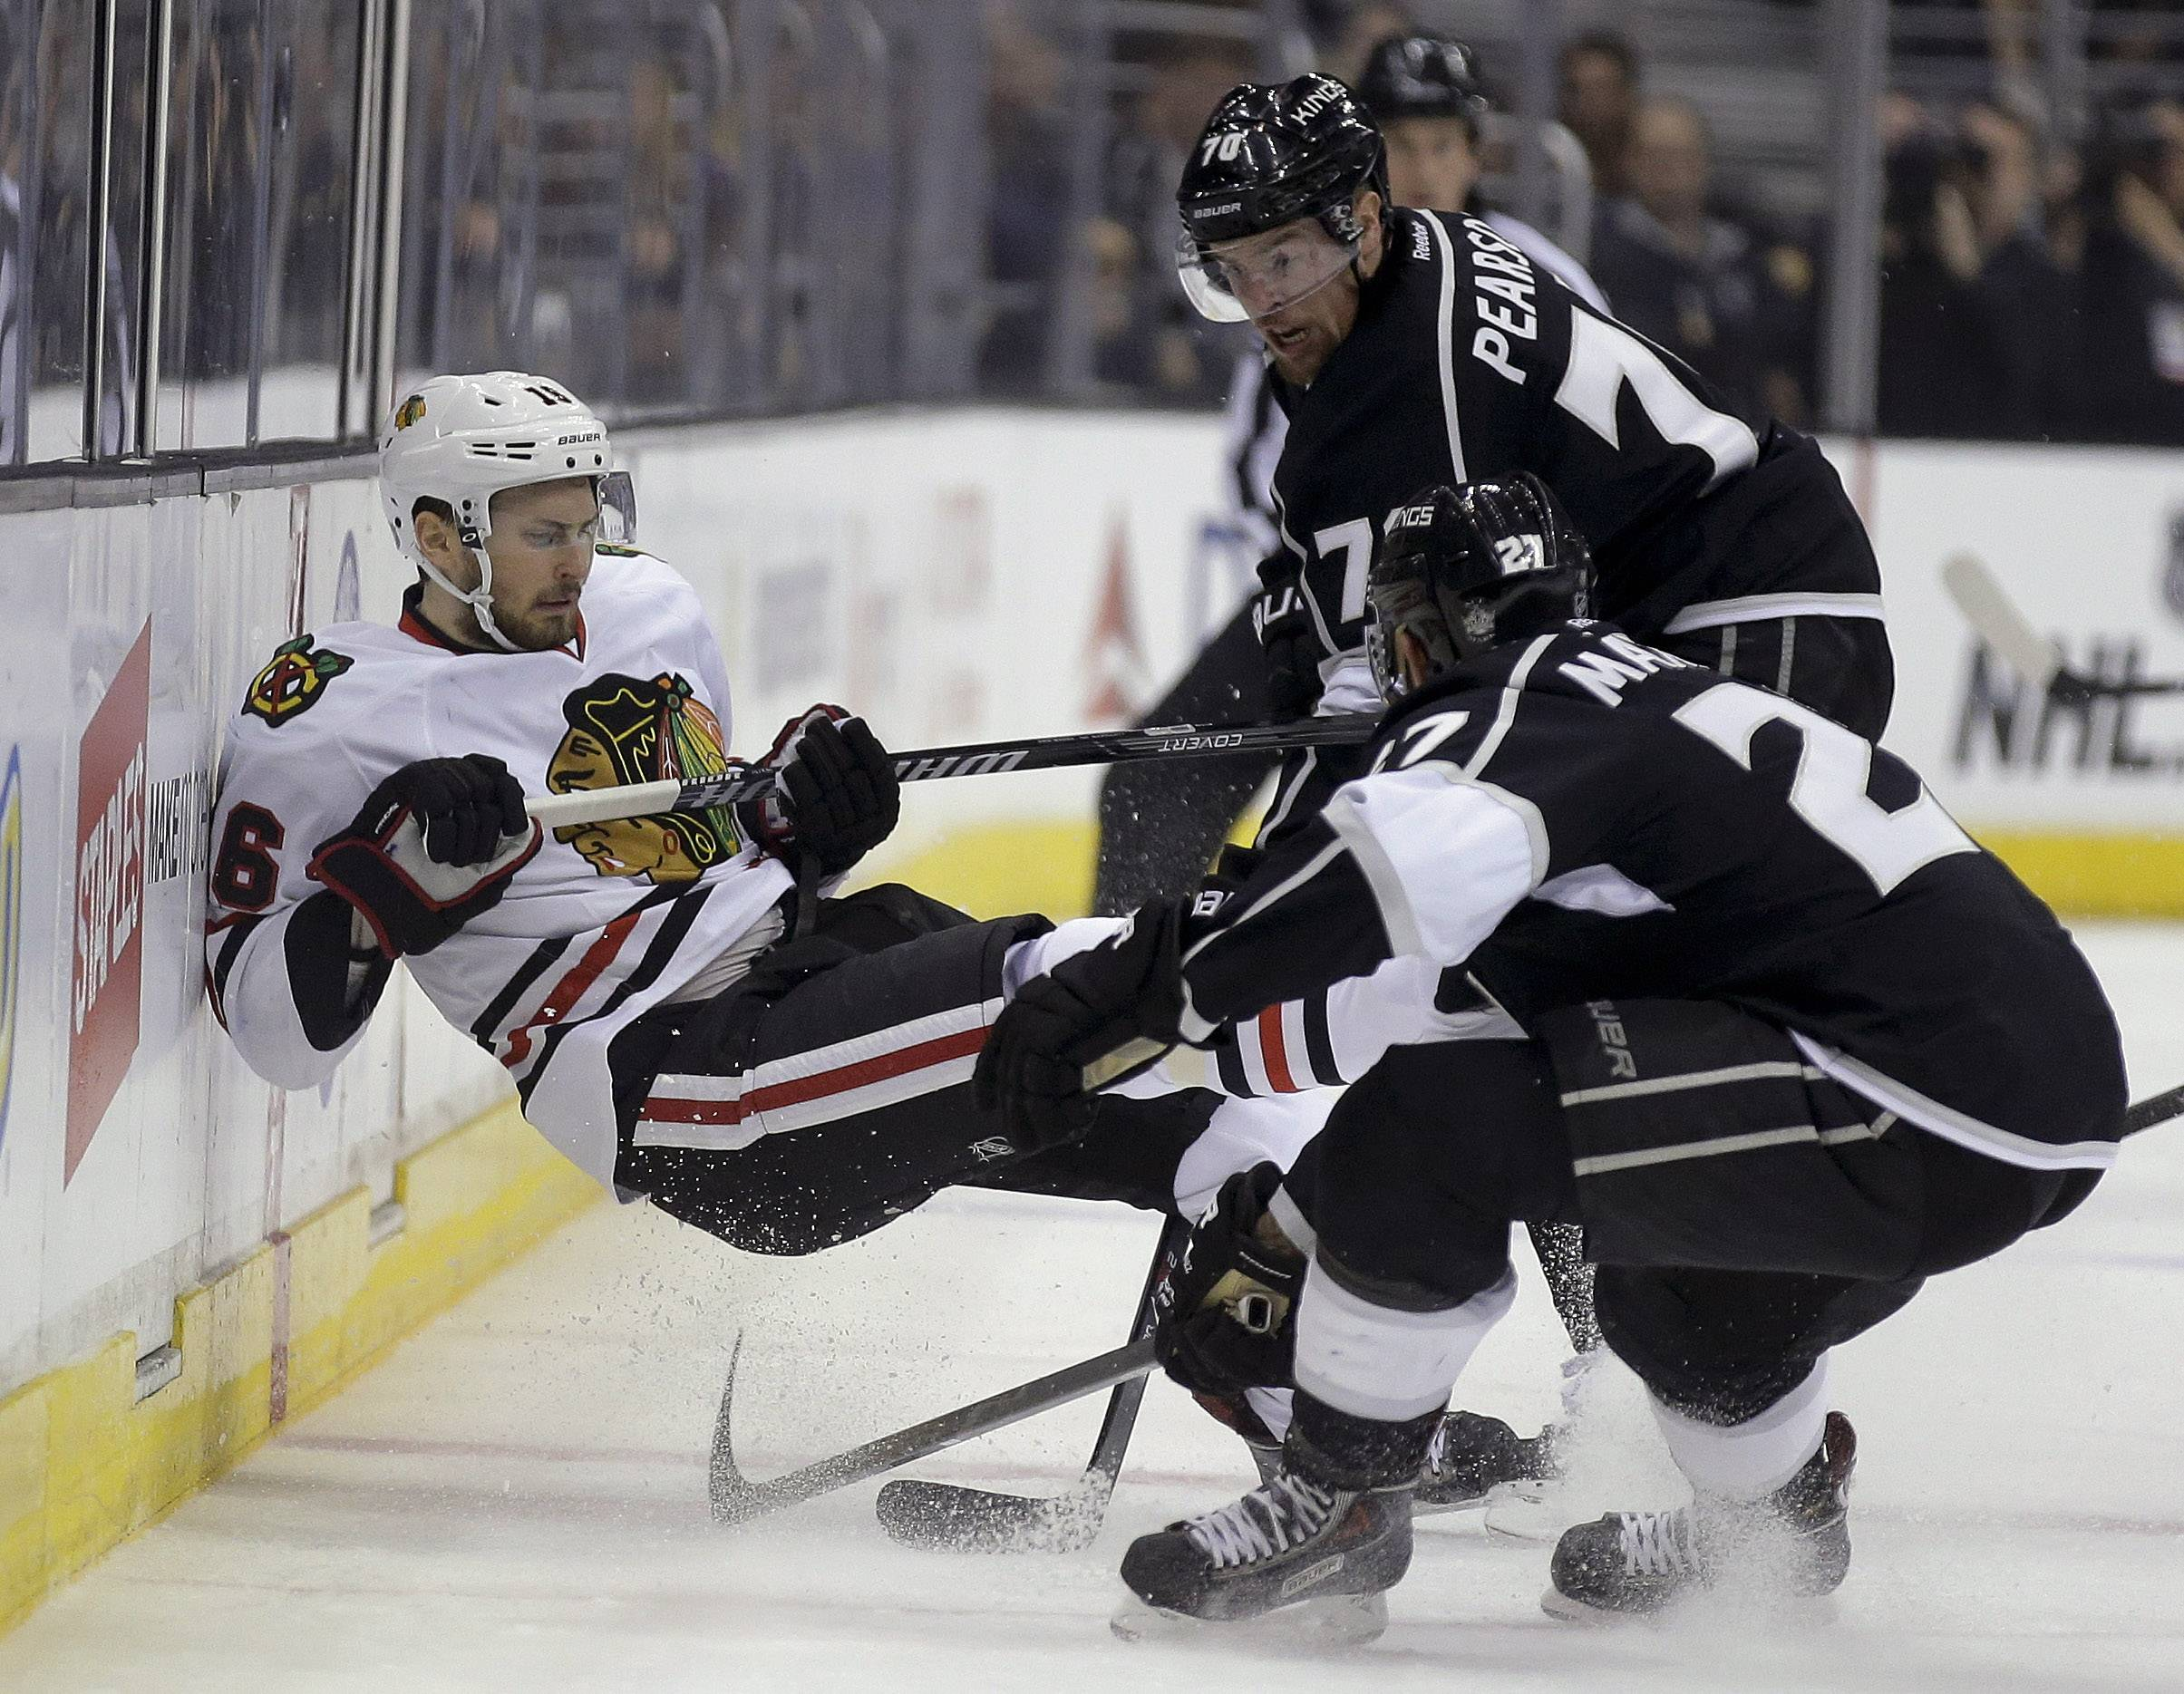 Chicago Blackhawks center Marcus Kruger, left, is checked by Los Angeles Kings defenseman Alec Martinez, and left wing Tanner Pearson, top, during the first period of Game 3 of the Western Conference finals of the NHL hockey Stanley Cup playoffs in Los Angeles, Saturday, May 24, 2014.